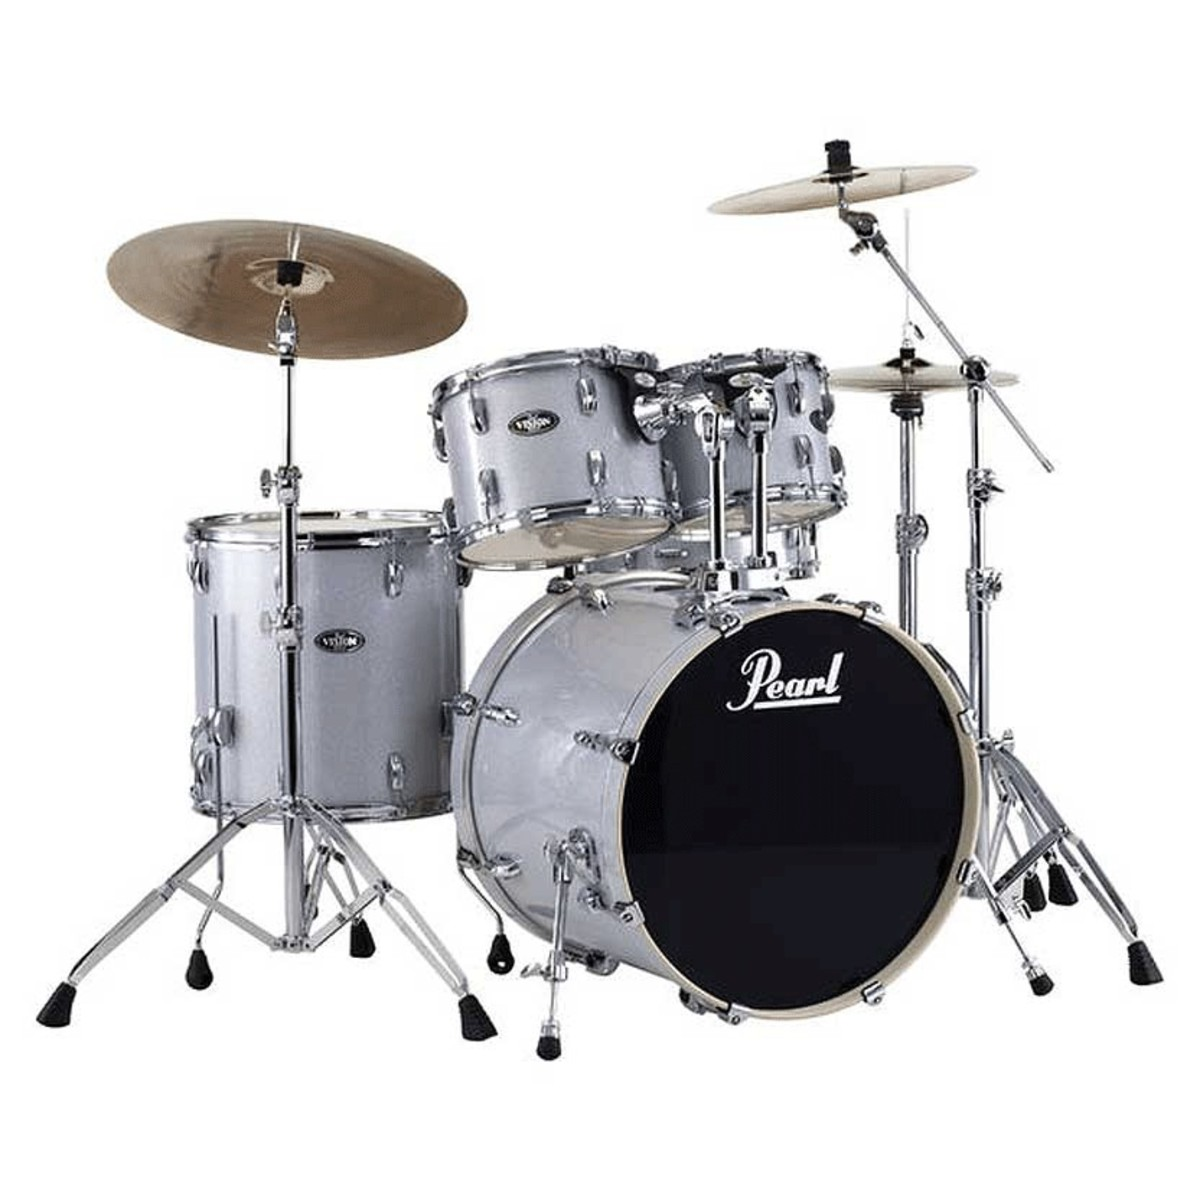 acoustic drum kits pearl export exx 20 39 39 fusion drum kit w sabian sbr cymbal set arctic sparkle. Black Bedroom Furniture Sets. Home Design Ideas